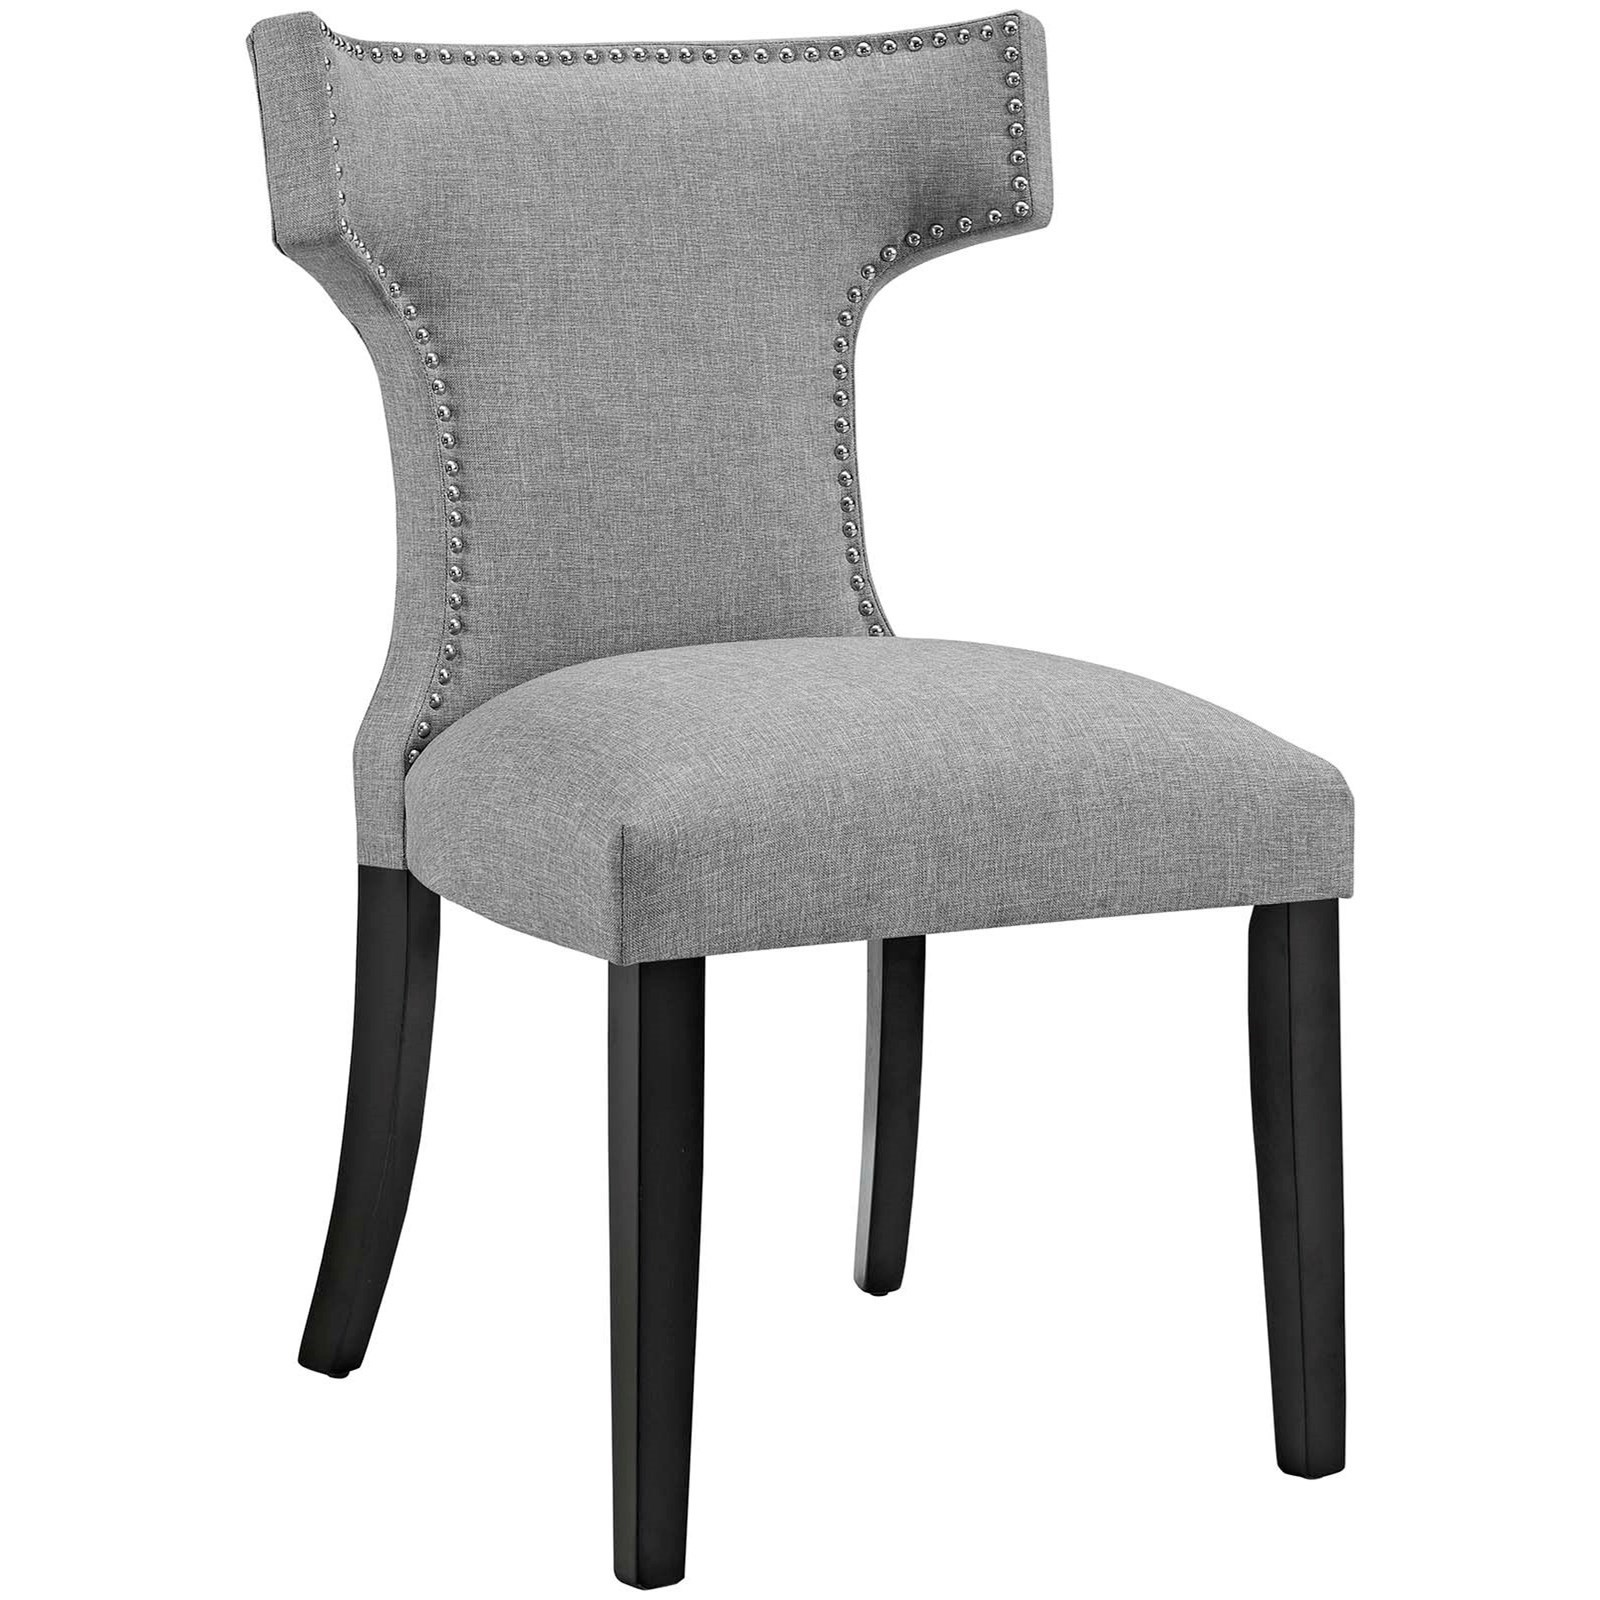 Curve Fabric Dining Chair by Modway at Del Sol Furniture